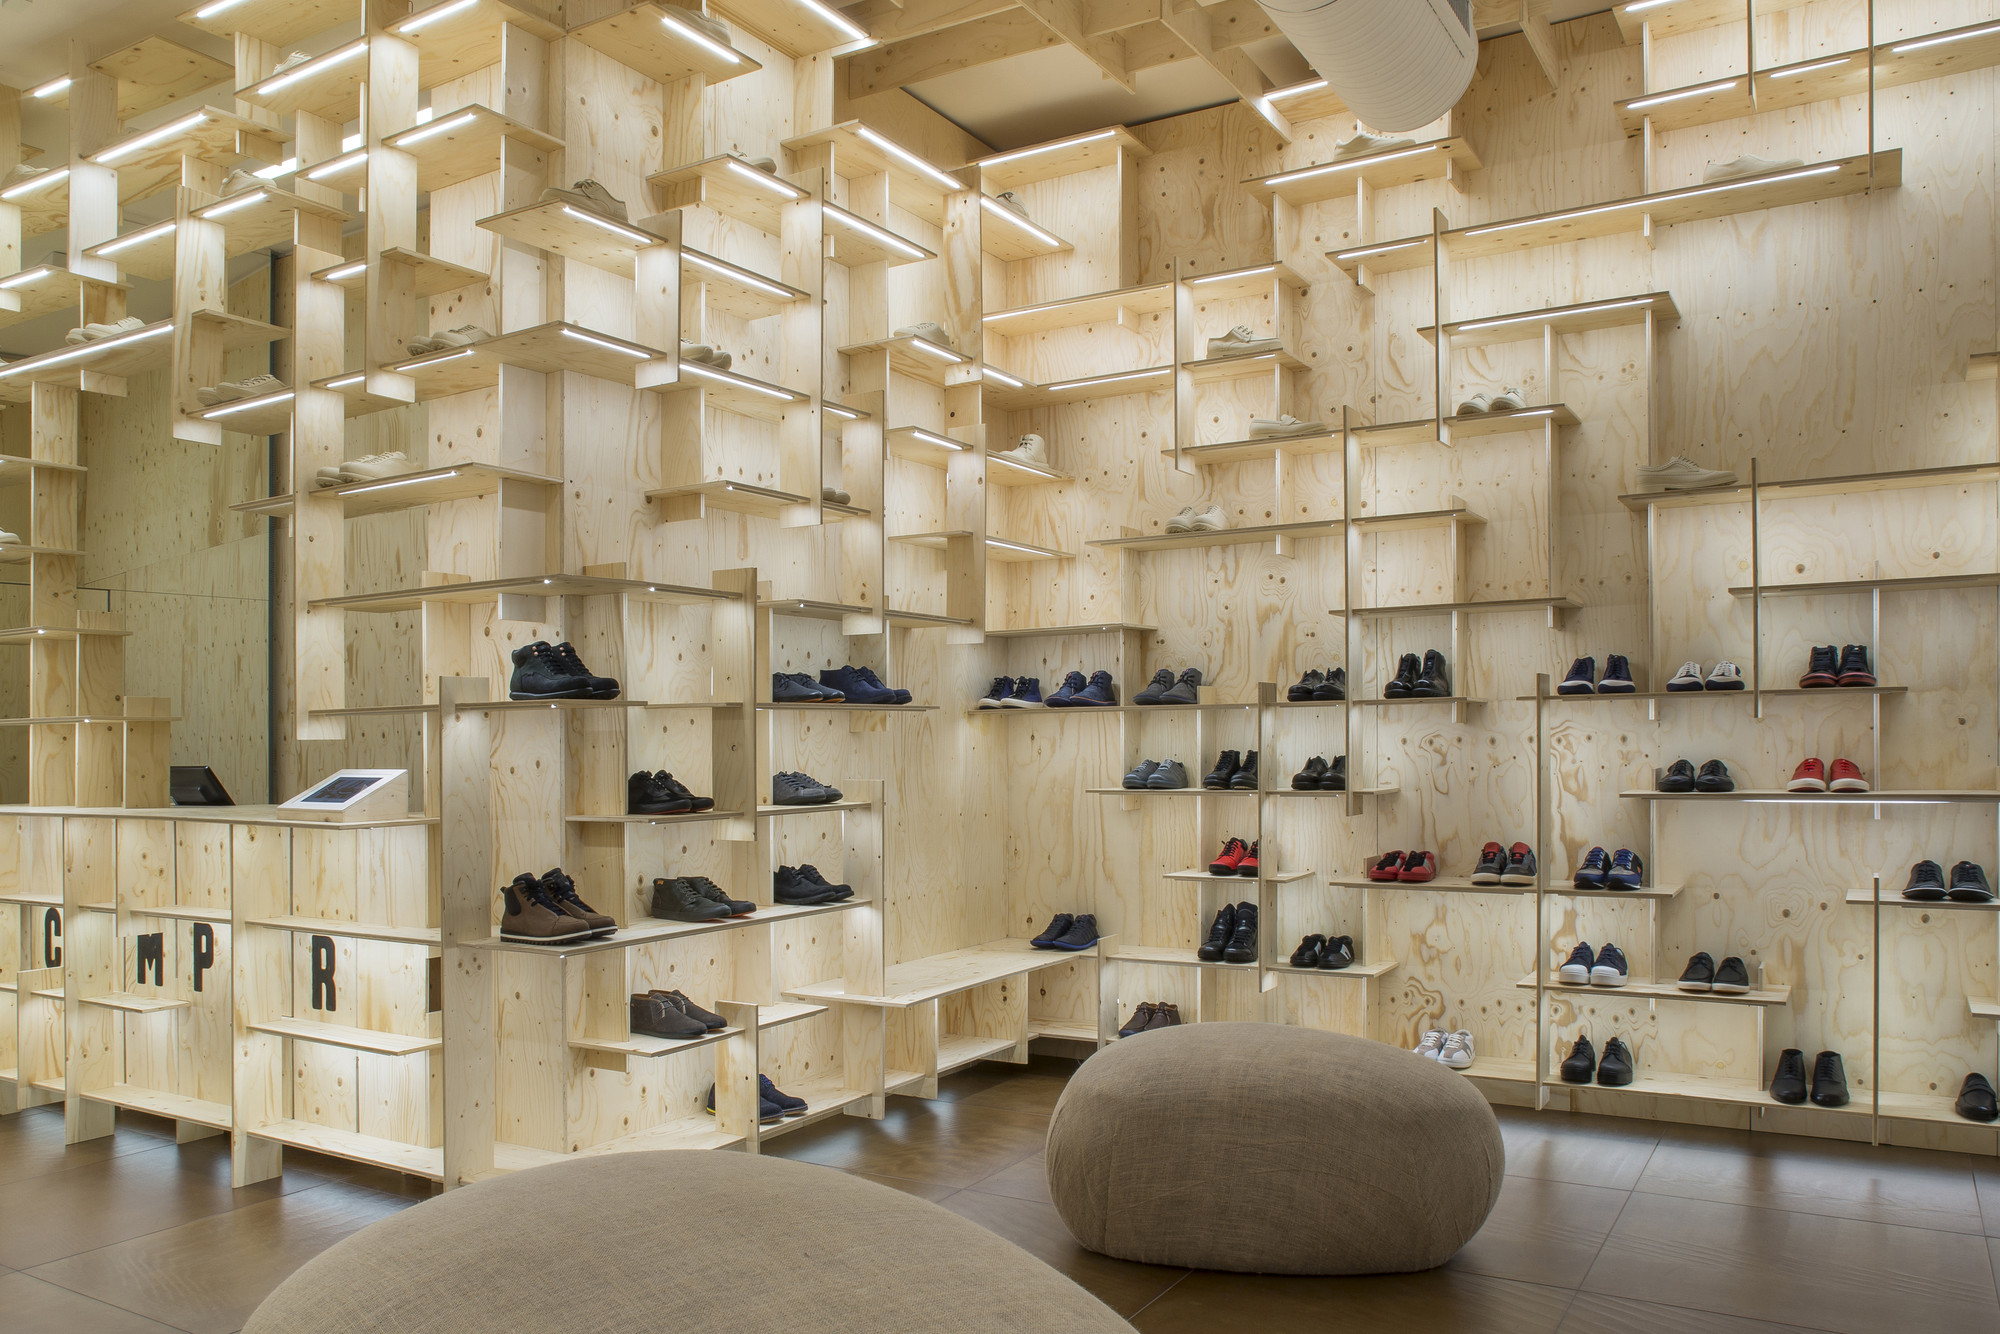 Design Ideas For Small Shoe Store: The Camper Store Milano By Kengo Kuma  And Associates, Italy